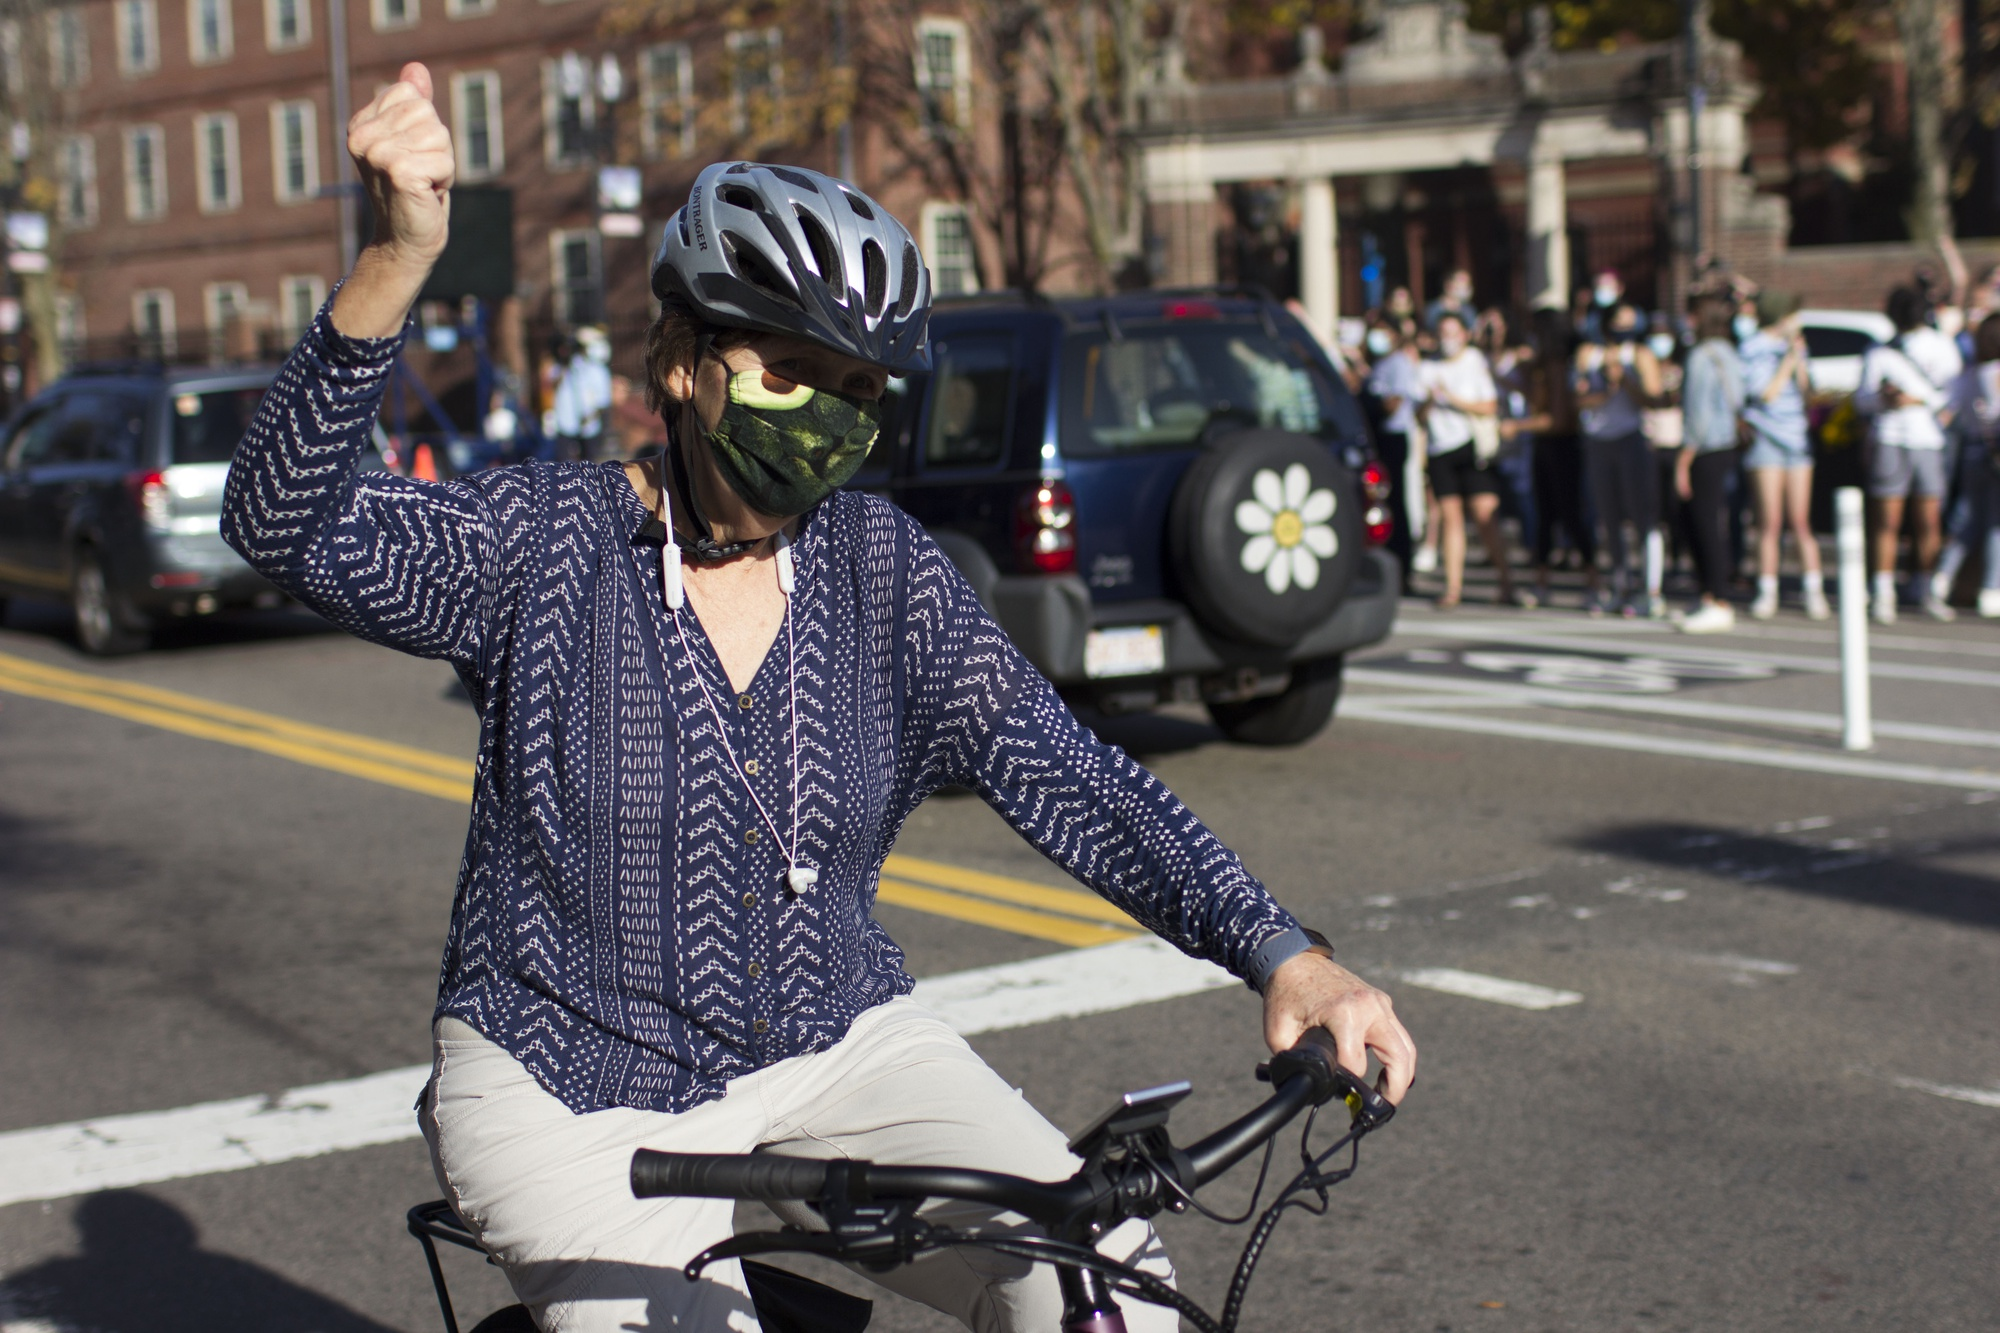 A cyclist raises a fist in celebration on Mass. Ave.